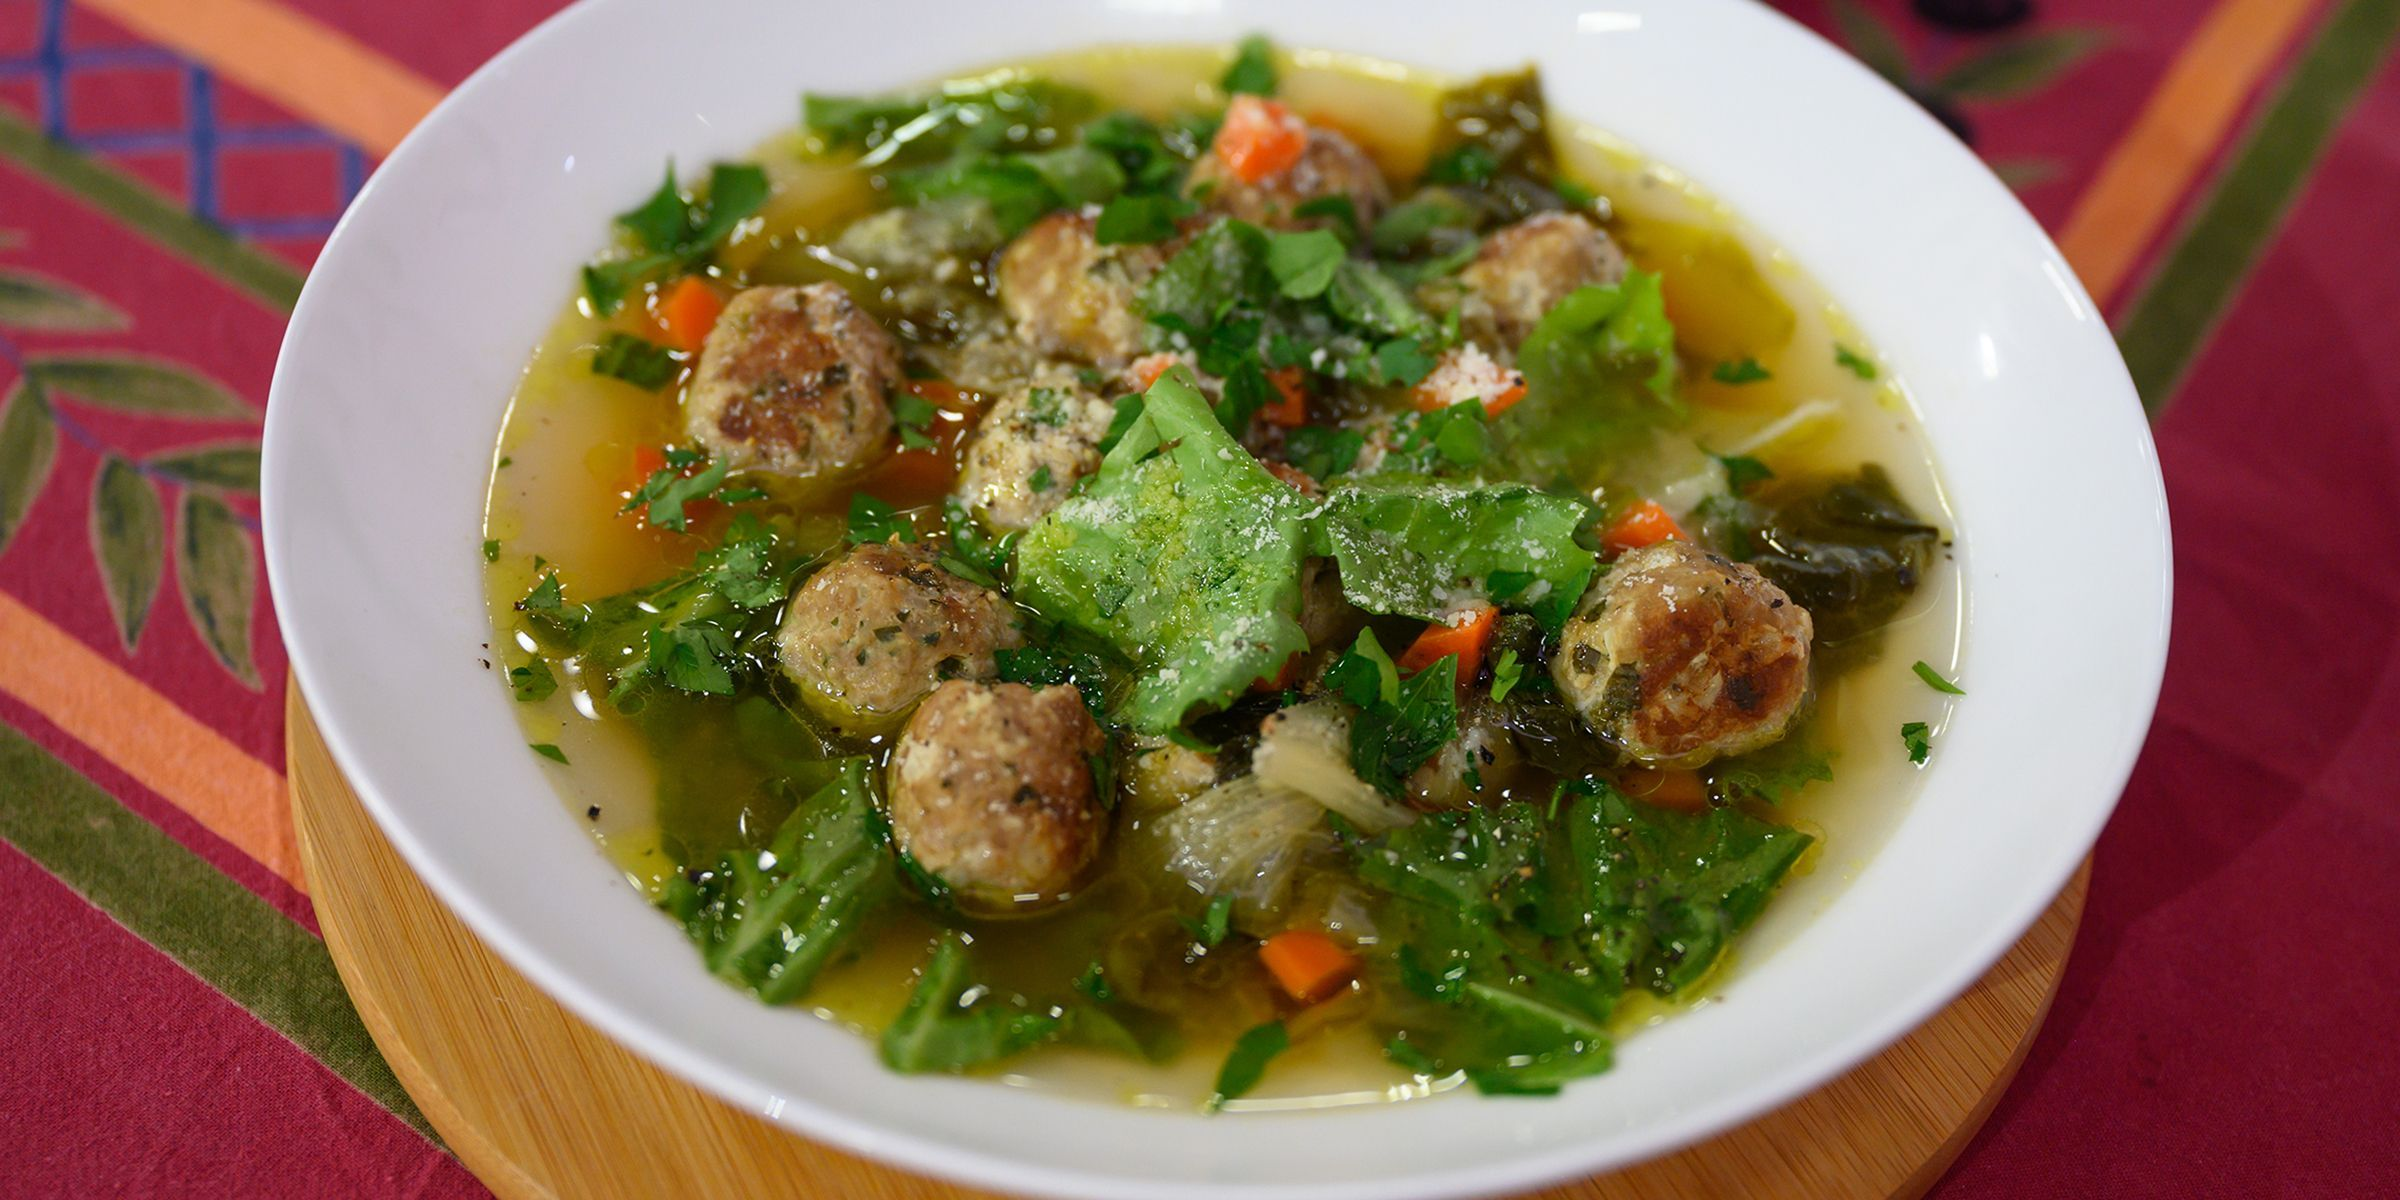 Valerie Bertinelli Leaves Out The Noodles For A Lighter Low Carb Version Of Italian Weddin In 2020 Food Network Recipes Low Carb Meatballs Italian Wedding Soup Recipe